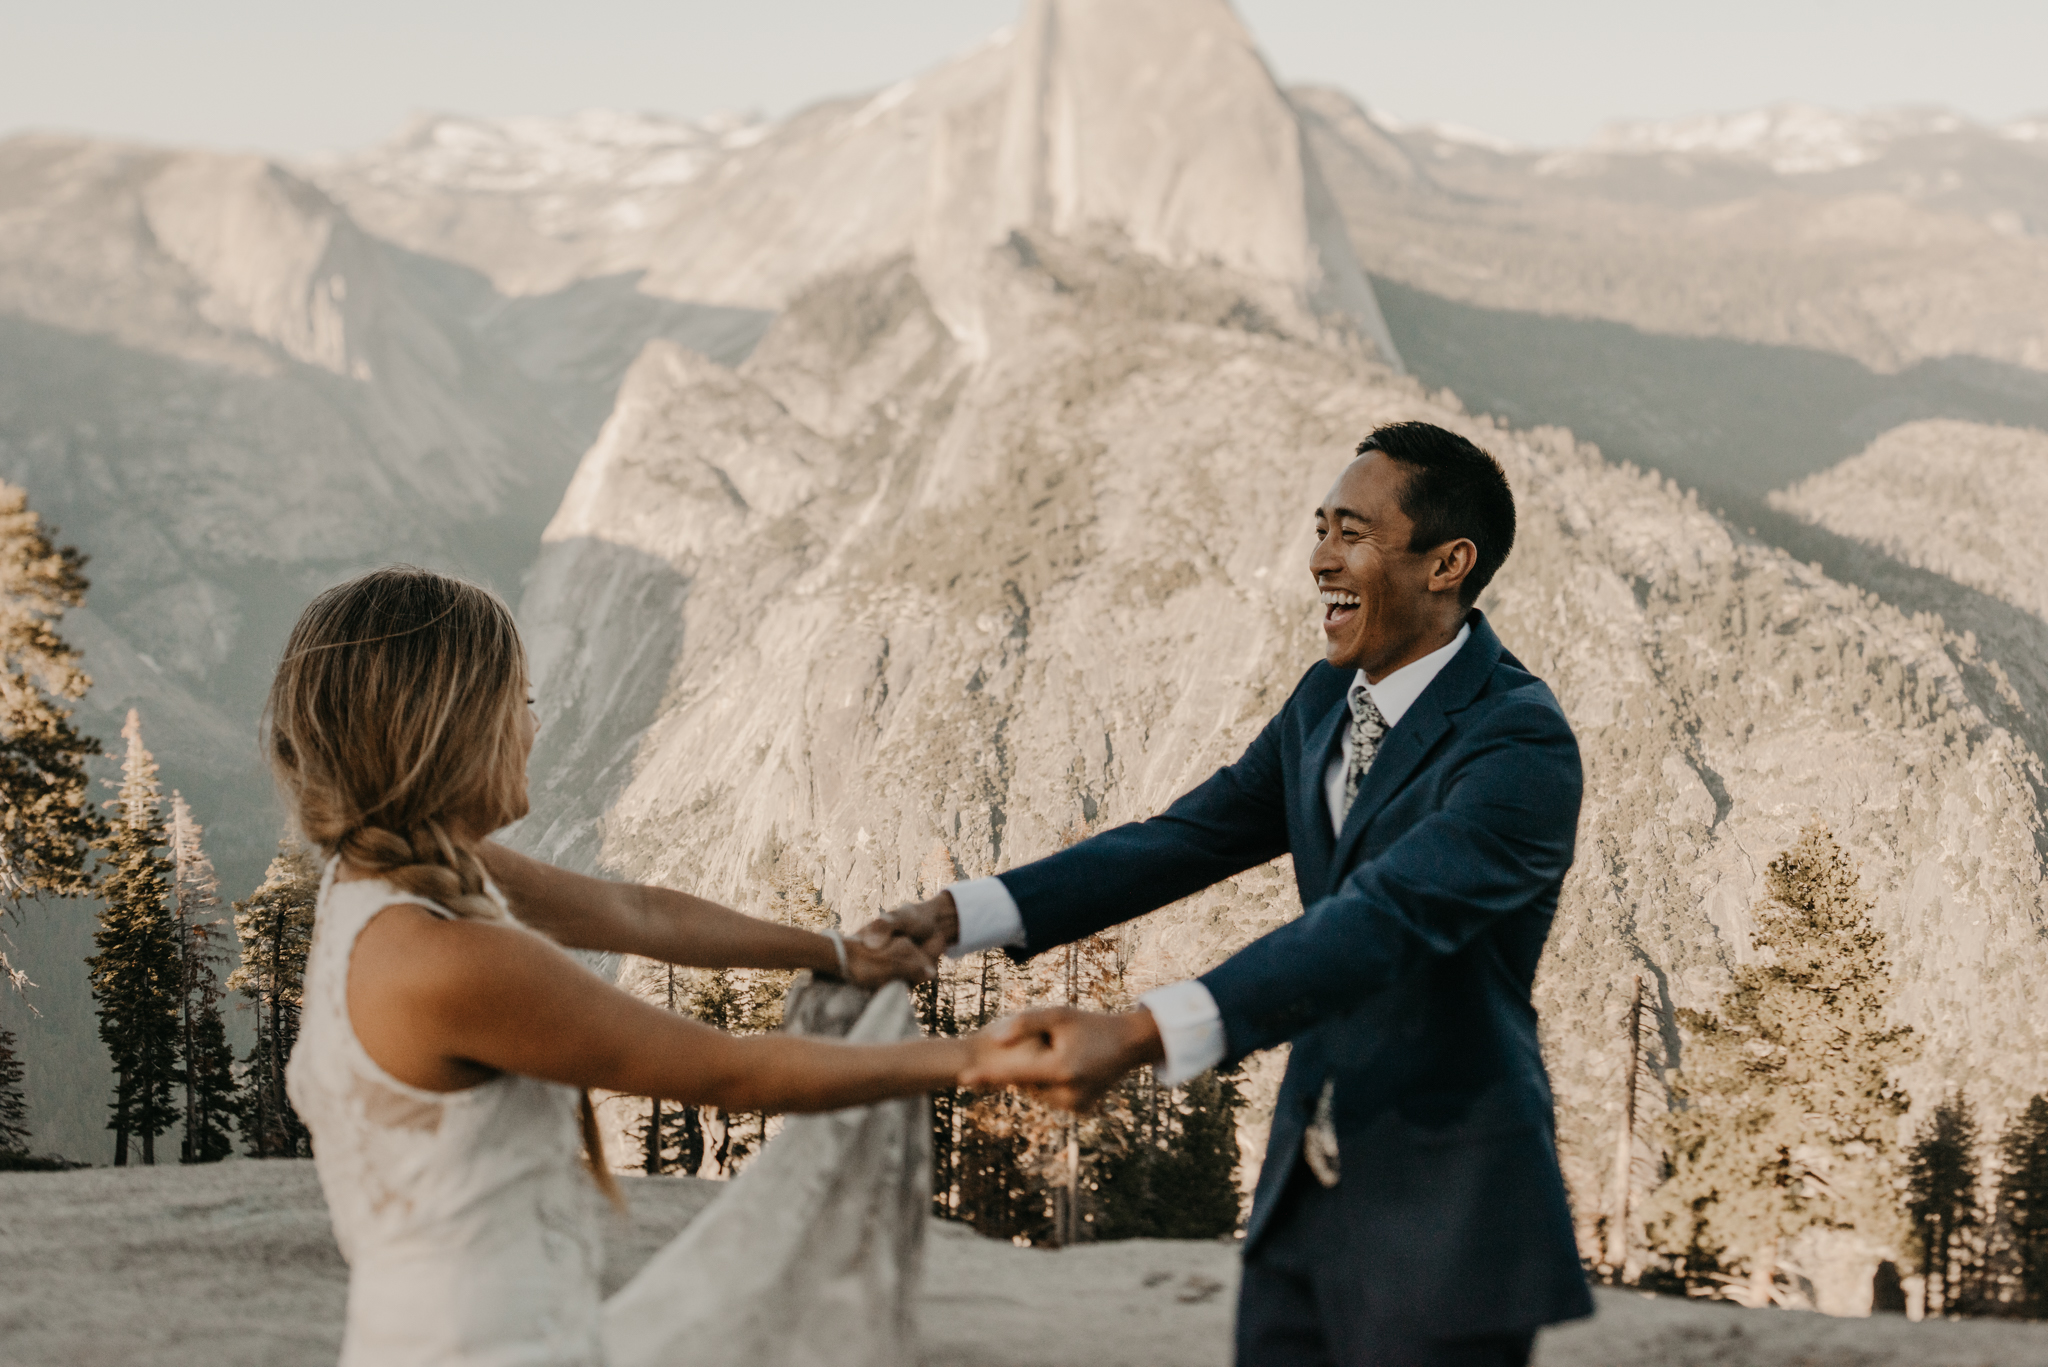 © Isaiah + Taylor Photography - Yosemite Nationanl Park Elopement Photographer - Evergreen Lodge Wedding-019.jpg